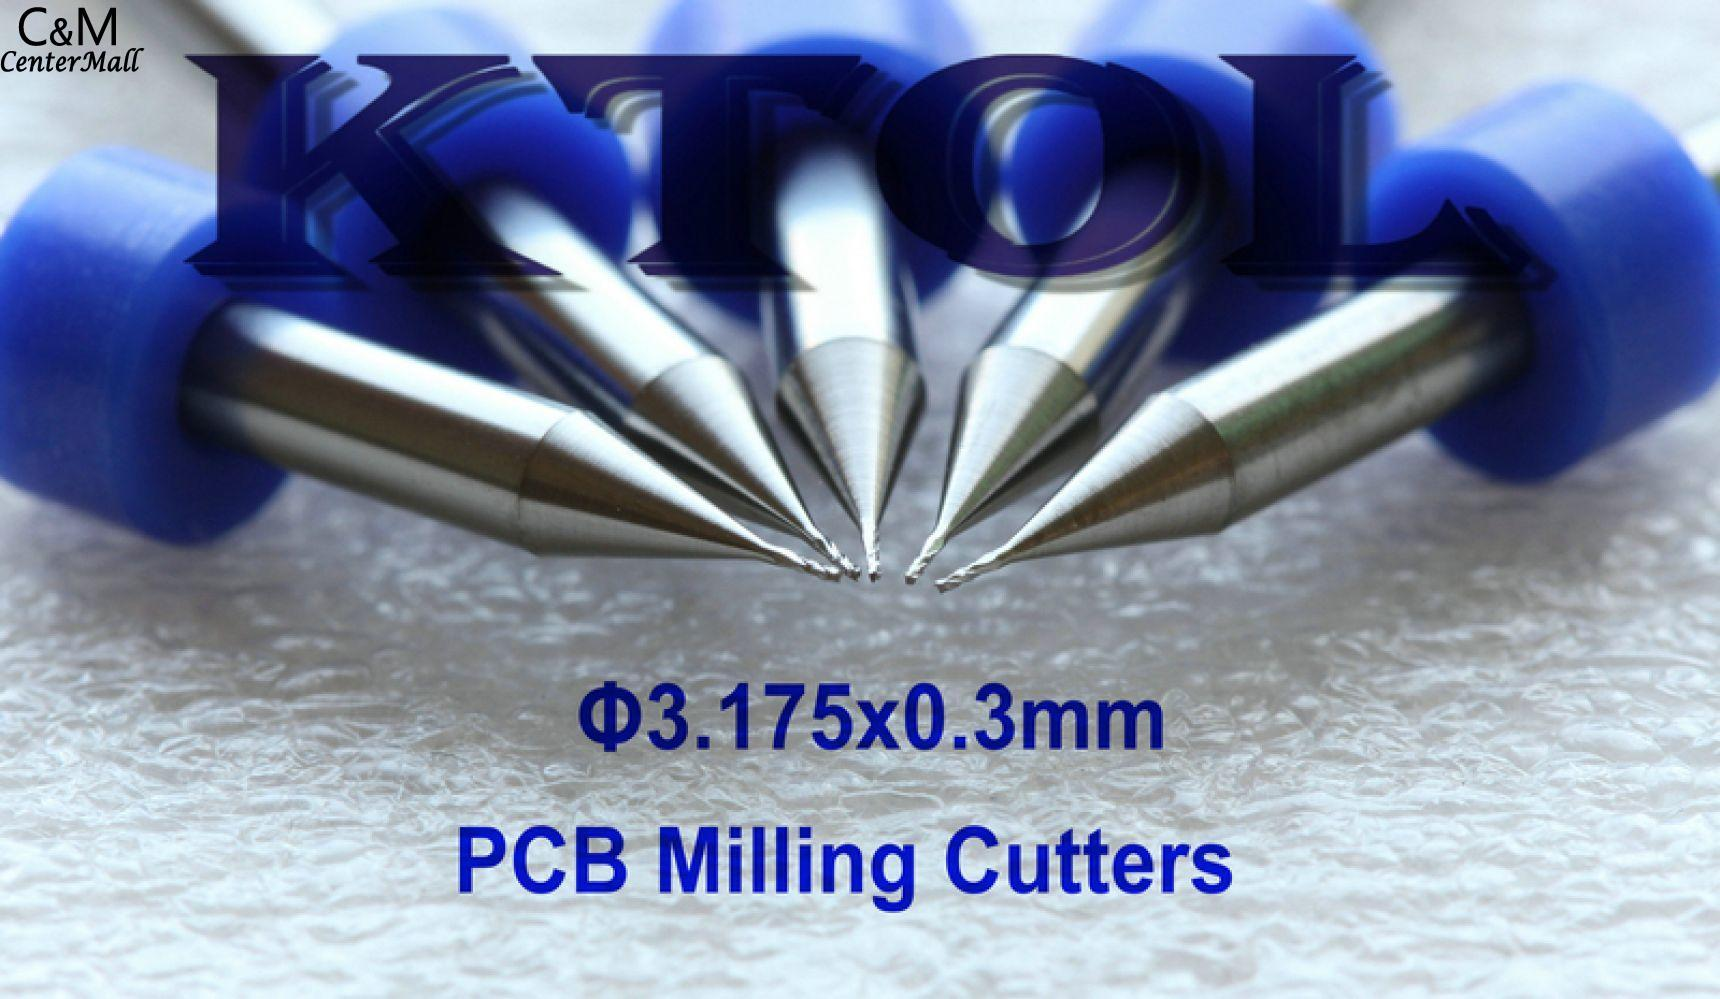 Parallel Carbide 10 Pcs 1 5mm Cnc Pcb Milling Cutter Bits Router 22mm Printed Circuit Board Bit Cutting 317503mm Solid For Tools Toolprinted Mill